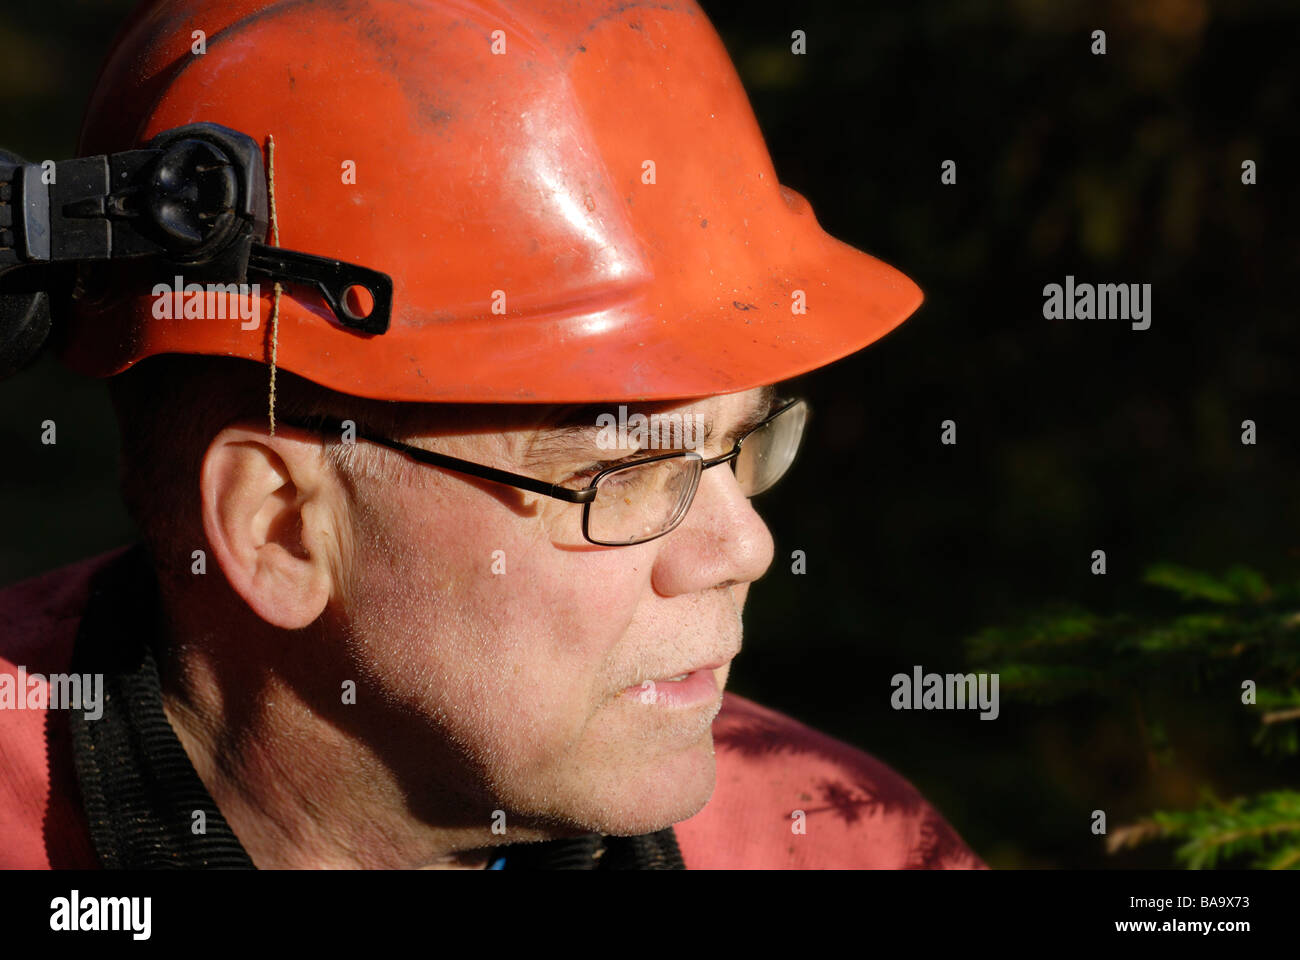 A woodman working in the forest Sweden - Stock Image